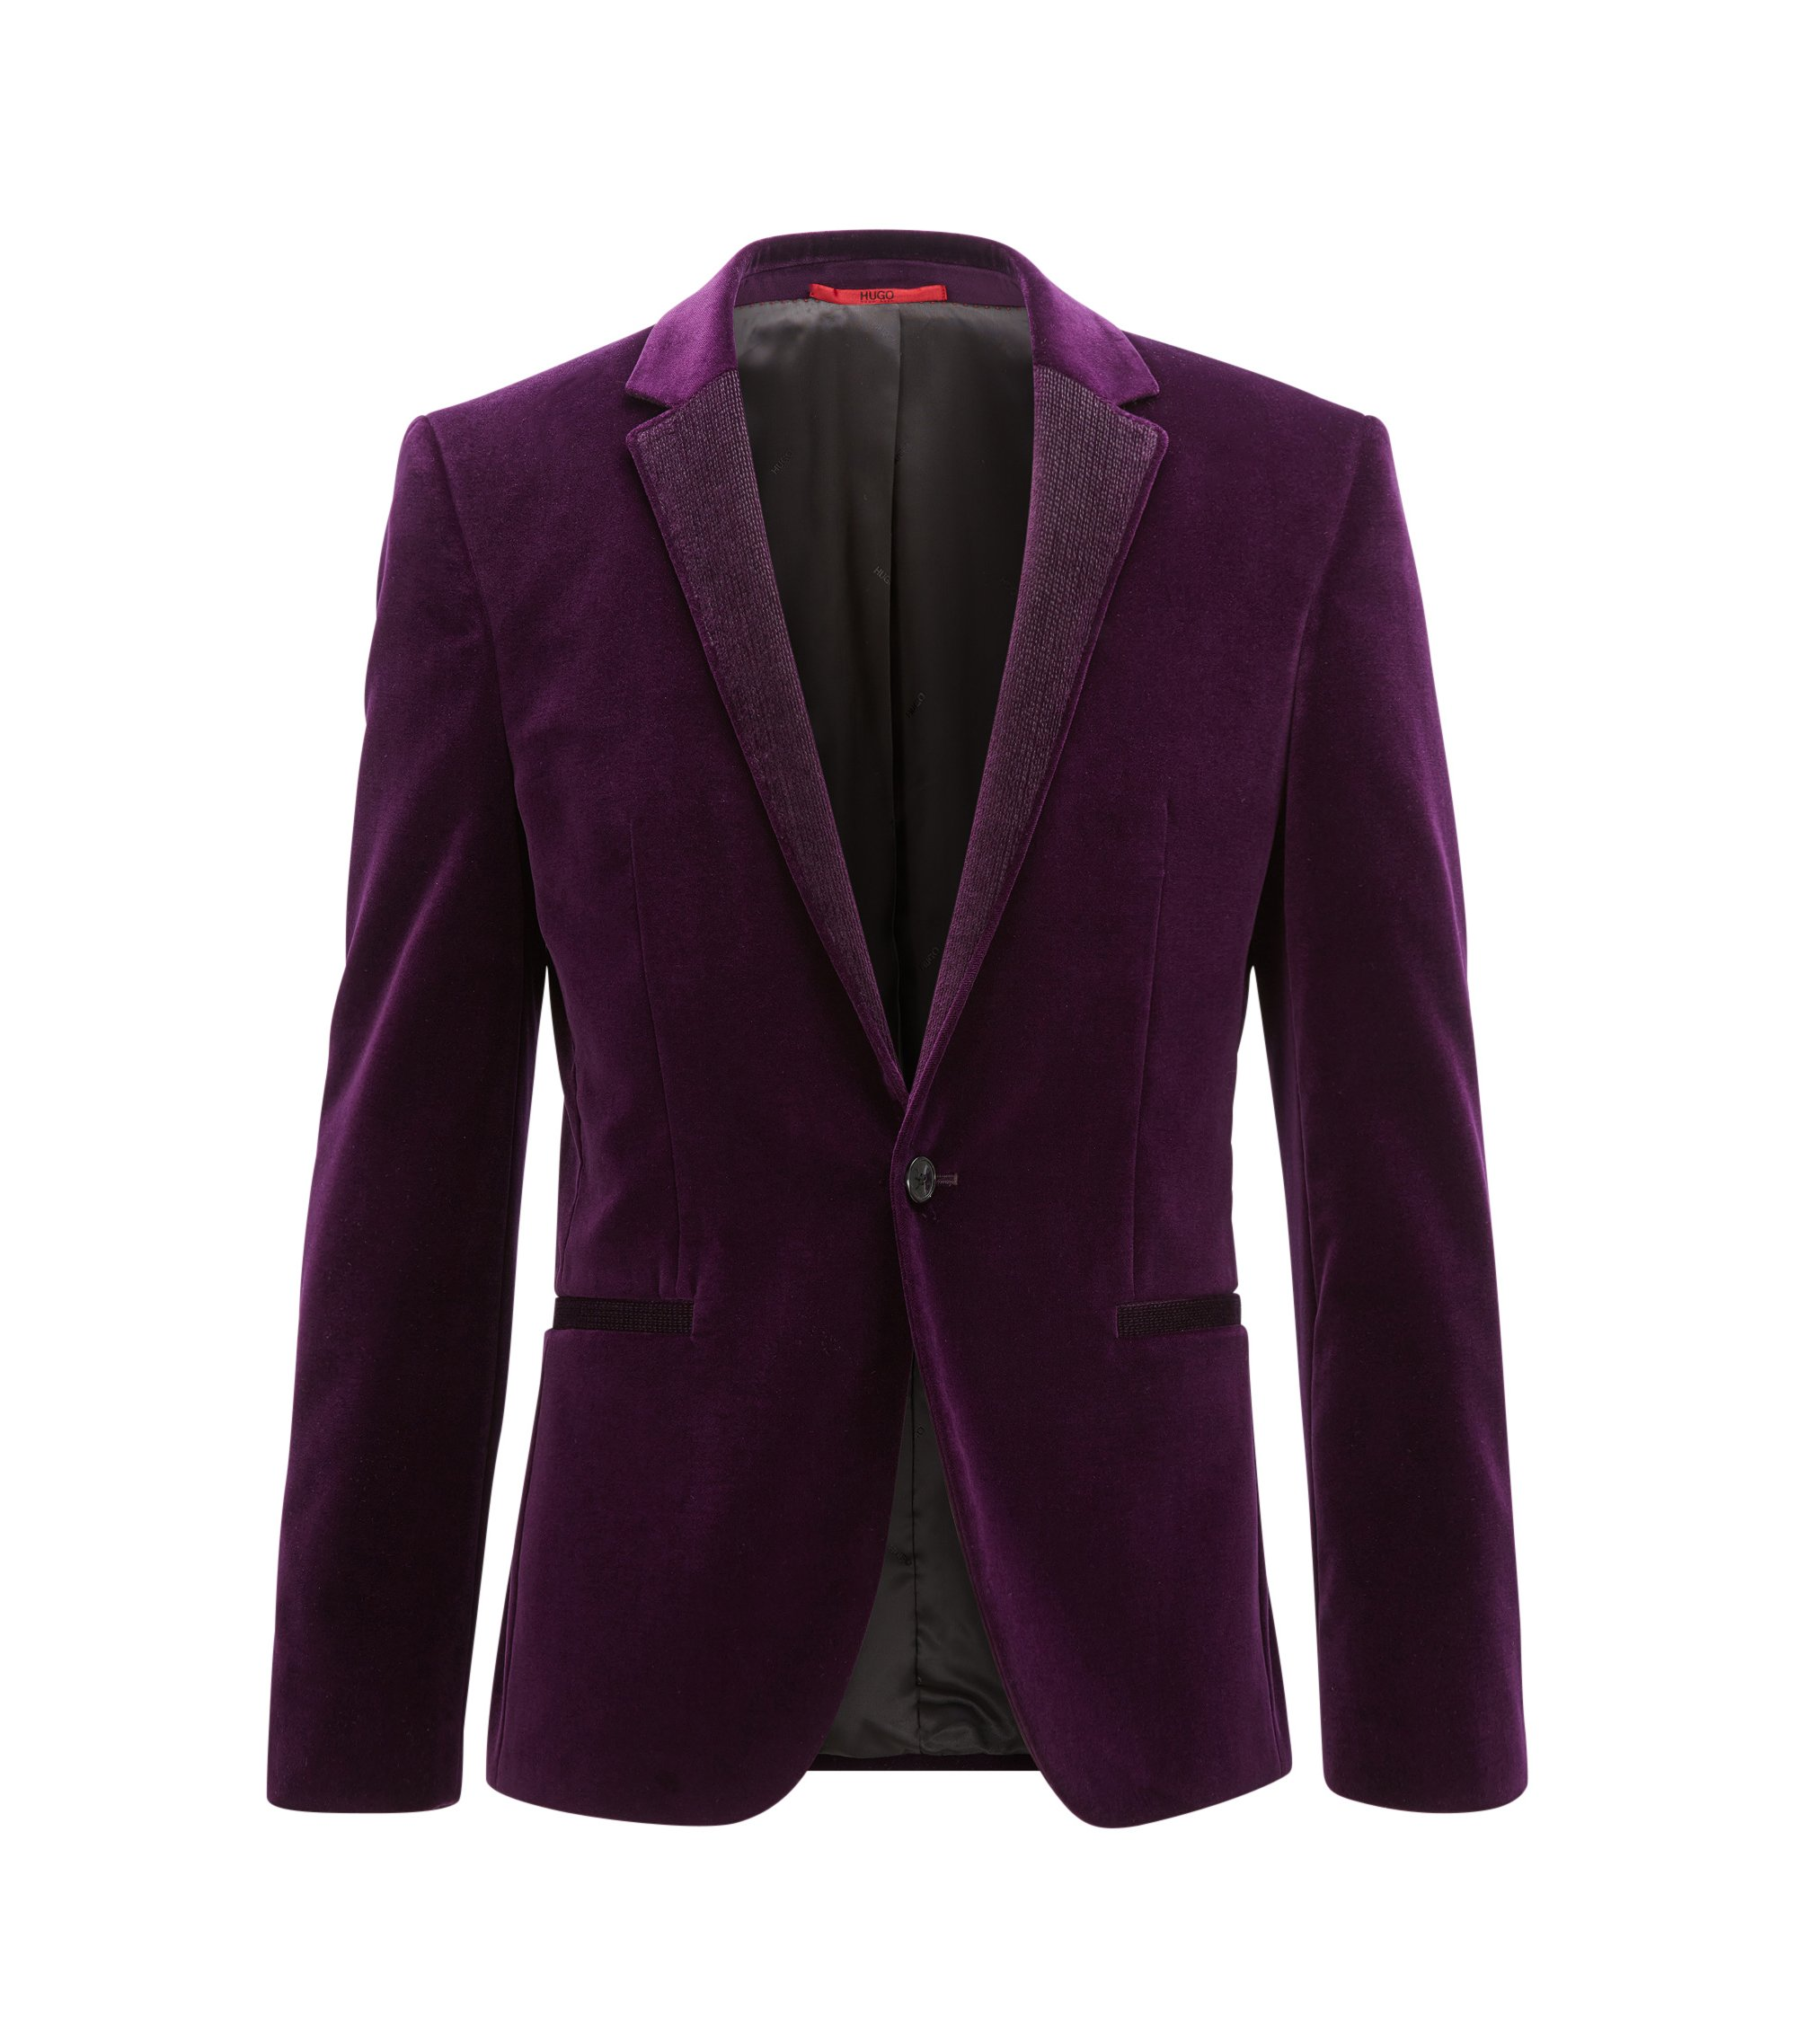 Velvet Sport Coat, Extra Slim Fit | Alwaro, Dark pink